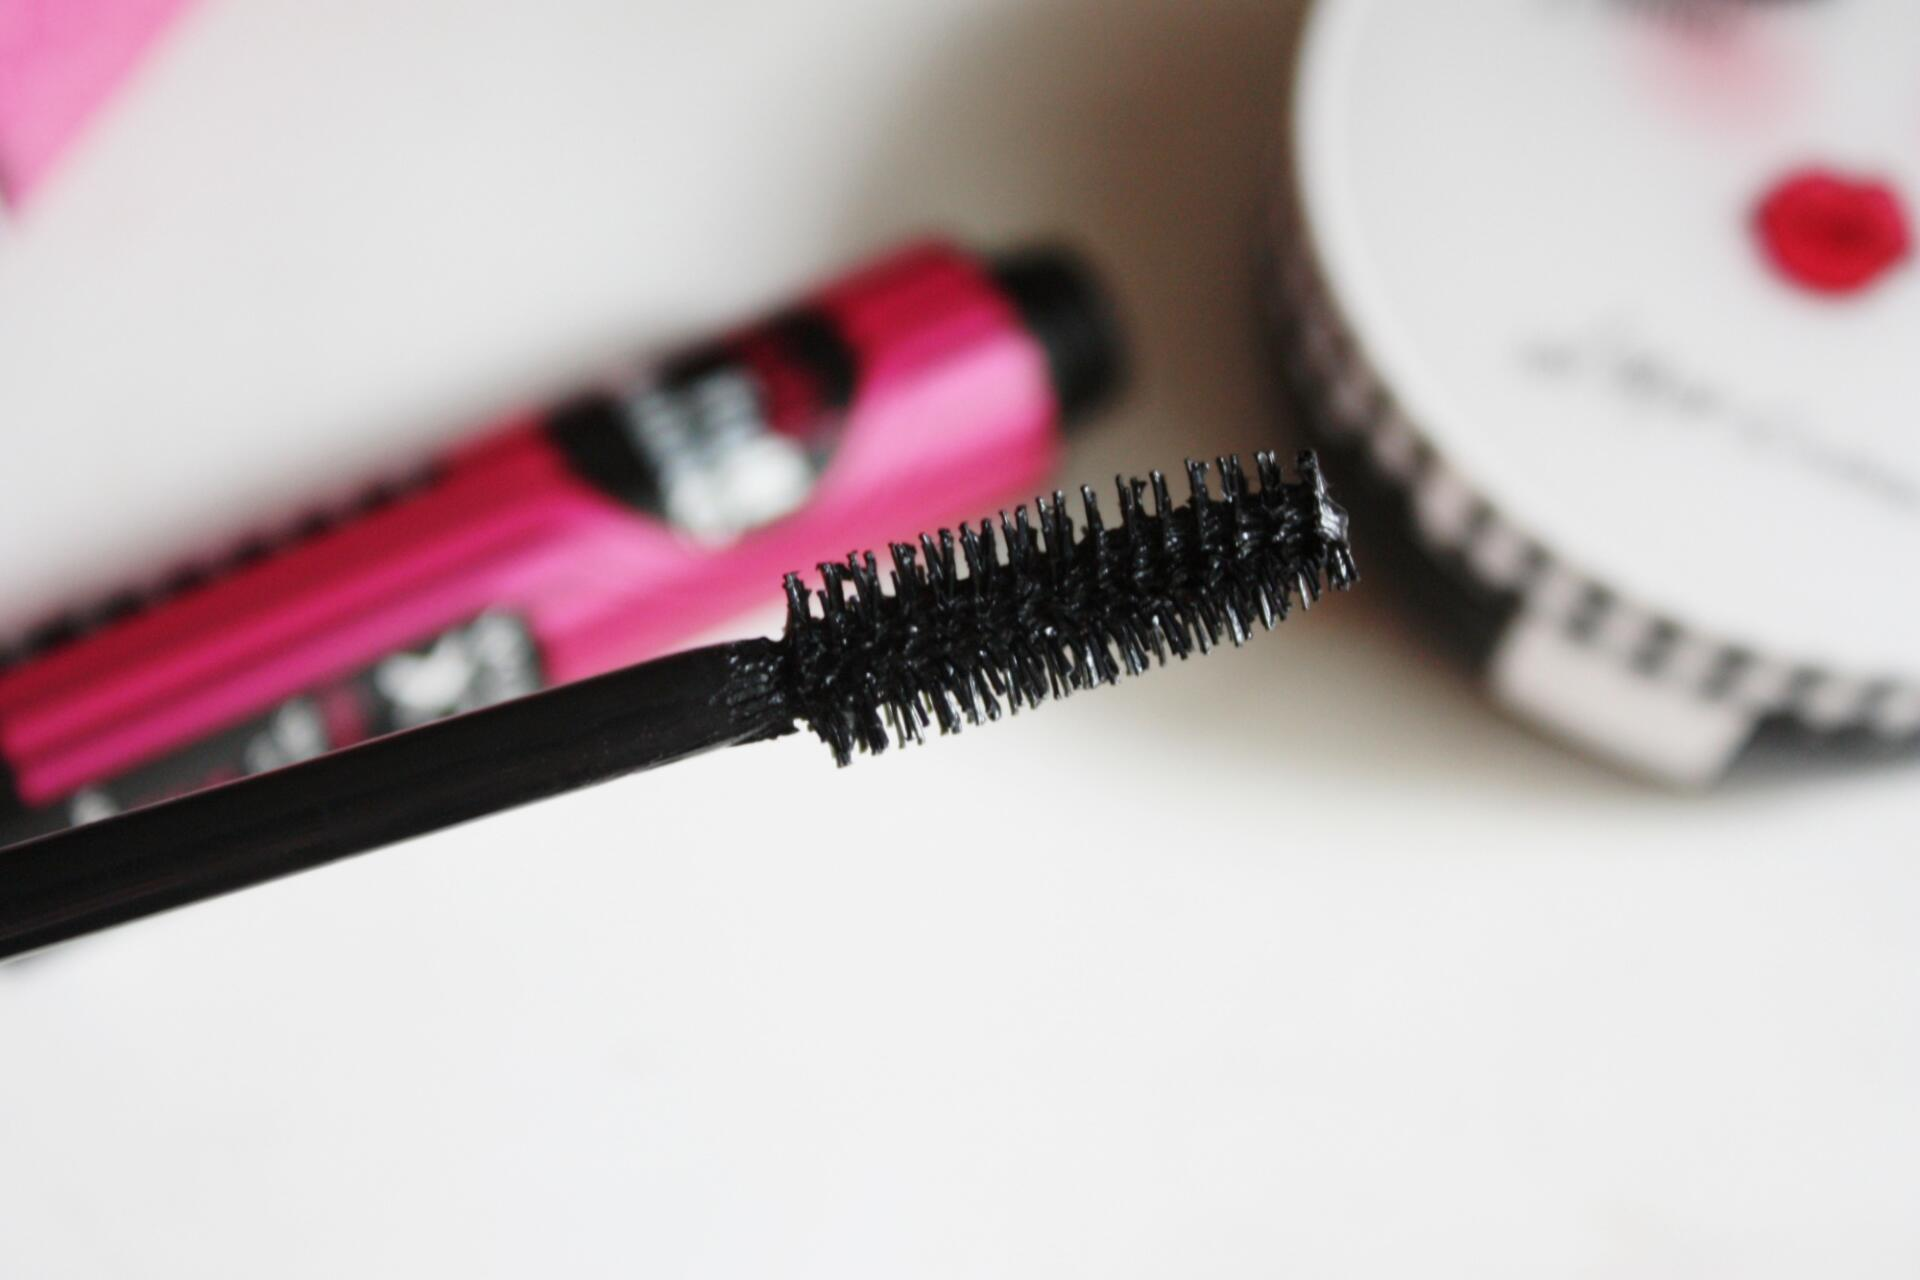 Bourjois - Beauty'Full volume mascara - 01 Beauty'Full Black. Туш, що надає об'єм